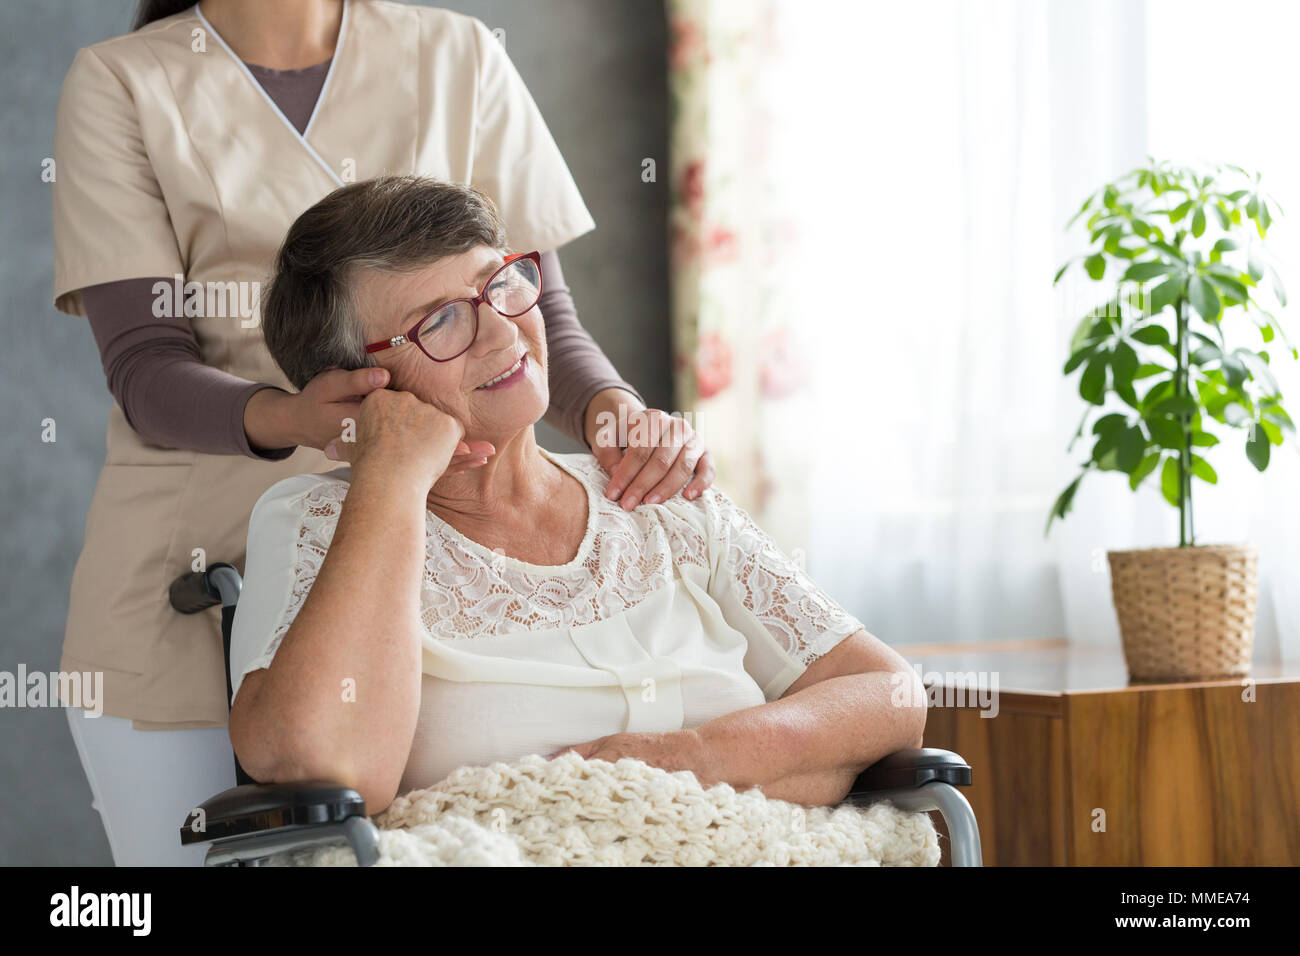 Paralyzed pensioner in wheelchair resting after successful rehabilitation session - Stock Image